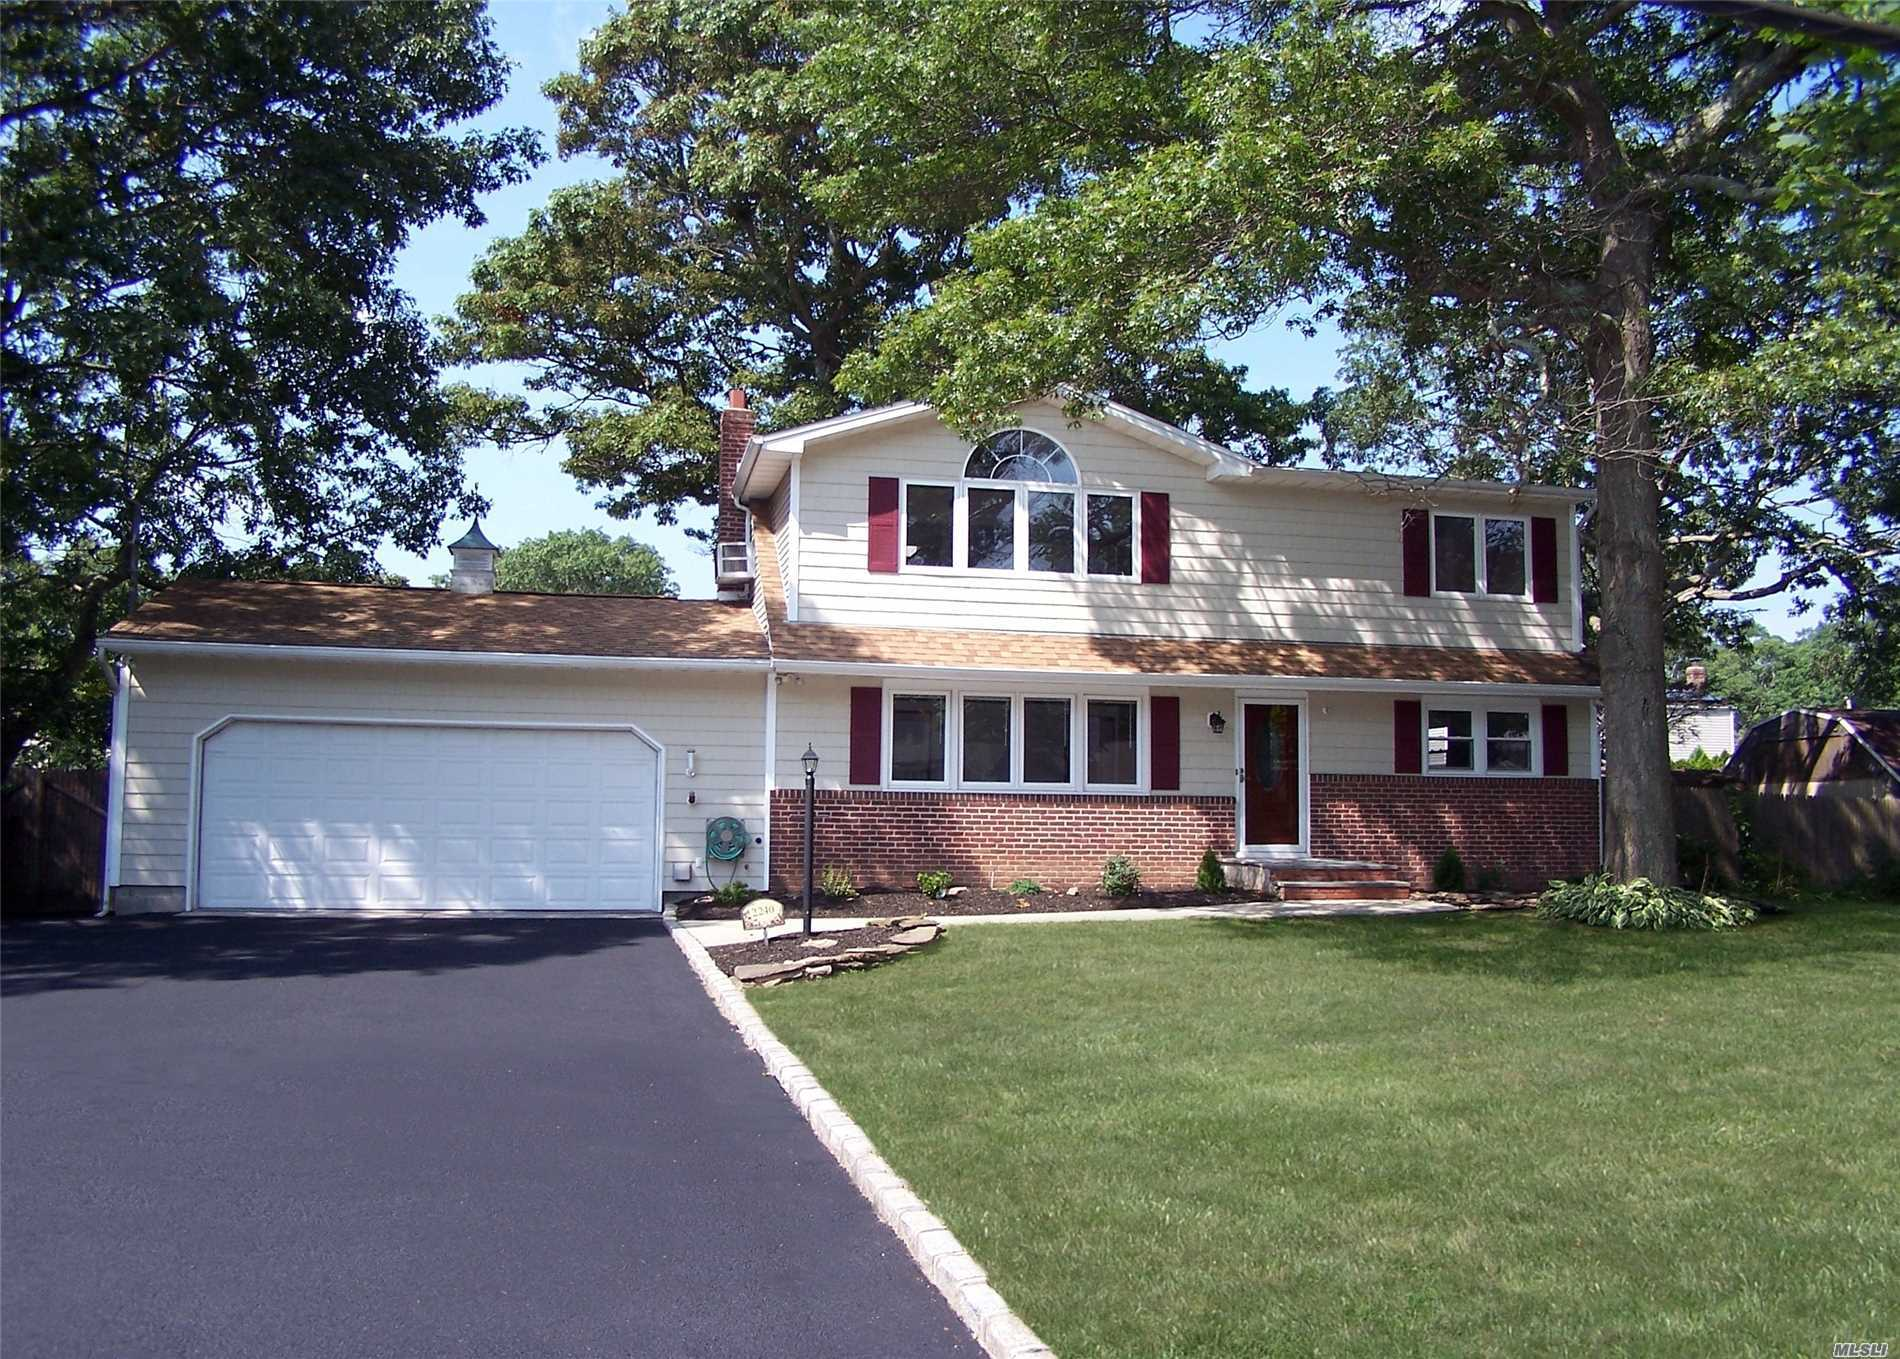 Amazing Colonial In Perfect Location, Completely Updated, 5 Bedrooms, 2 Baths, Featuring A Large Master Suite With Walk In And Dressing Area, Volume Ceilings, Porcelin Tile In Both Bathrooms And In Eik W/Ss Applic, Granite And Glass Back Splash. Hardwood And Carpet, Anderson Windows, Full Finished Basement With Play Room,  2 Car Garage. Storage Is Not A Problem. Move Right Into This Newly Renovated Home And Start Your Next Chapter.